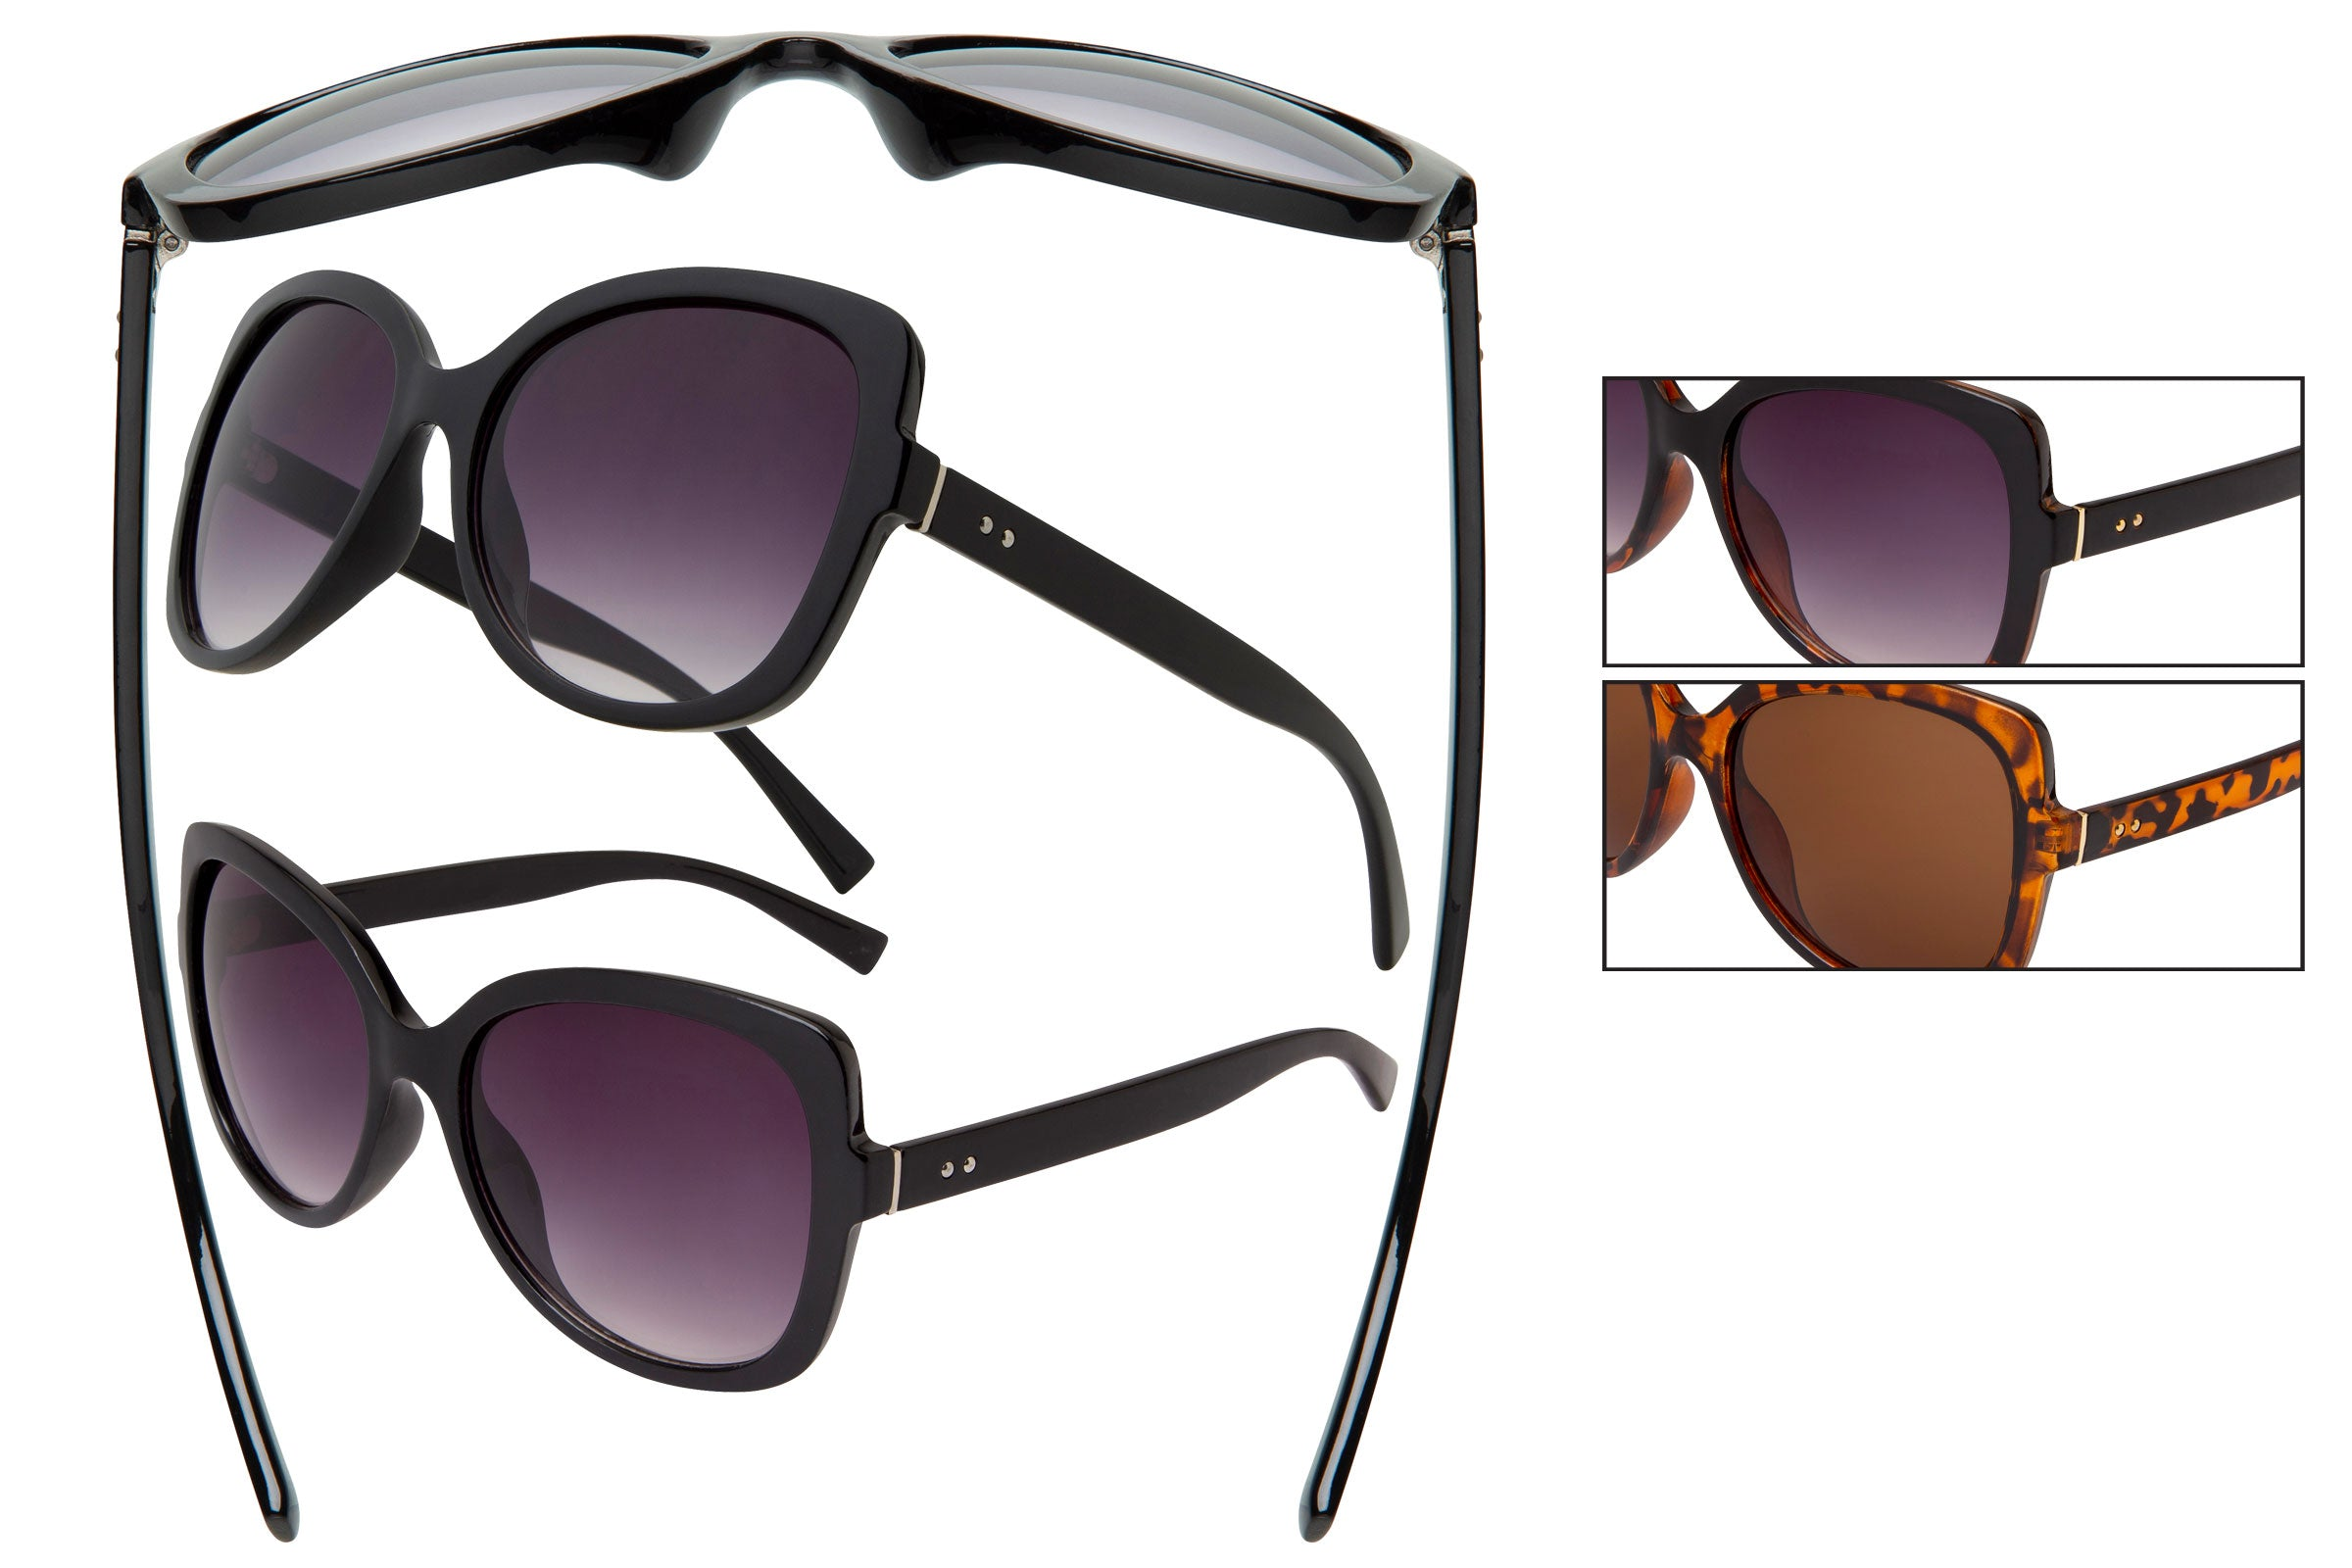 66118 - Women's PC Fashion Sunglasses